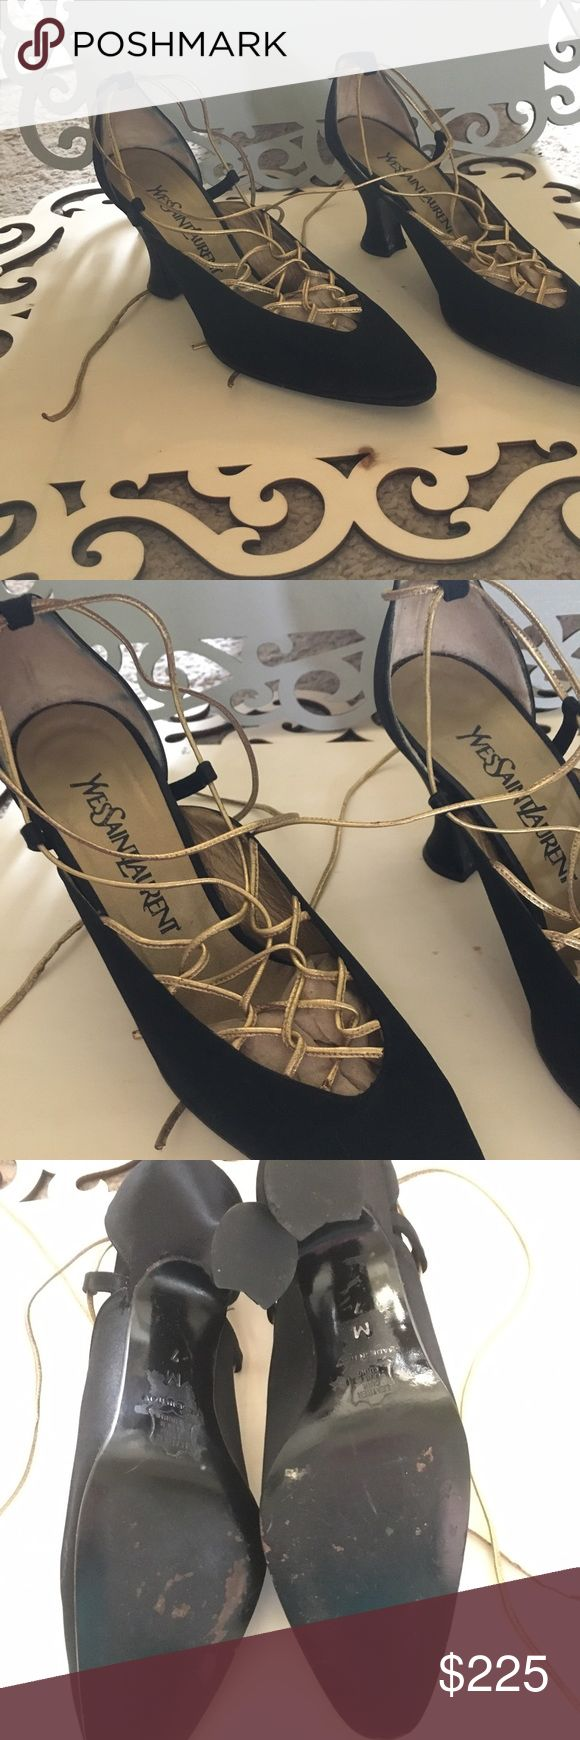 YSL Heels Black & Gold Yves Saint Laurent Heels with Wrap Around Tie 👠Worn with Love. Says M (7) on bottom of heel Yves Saint Laurent Shoes Heels